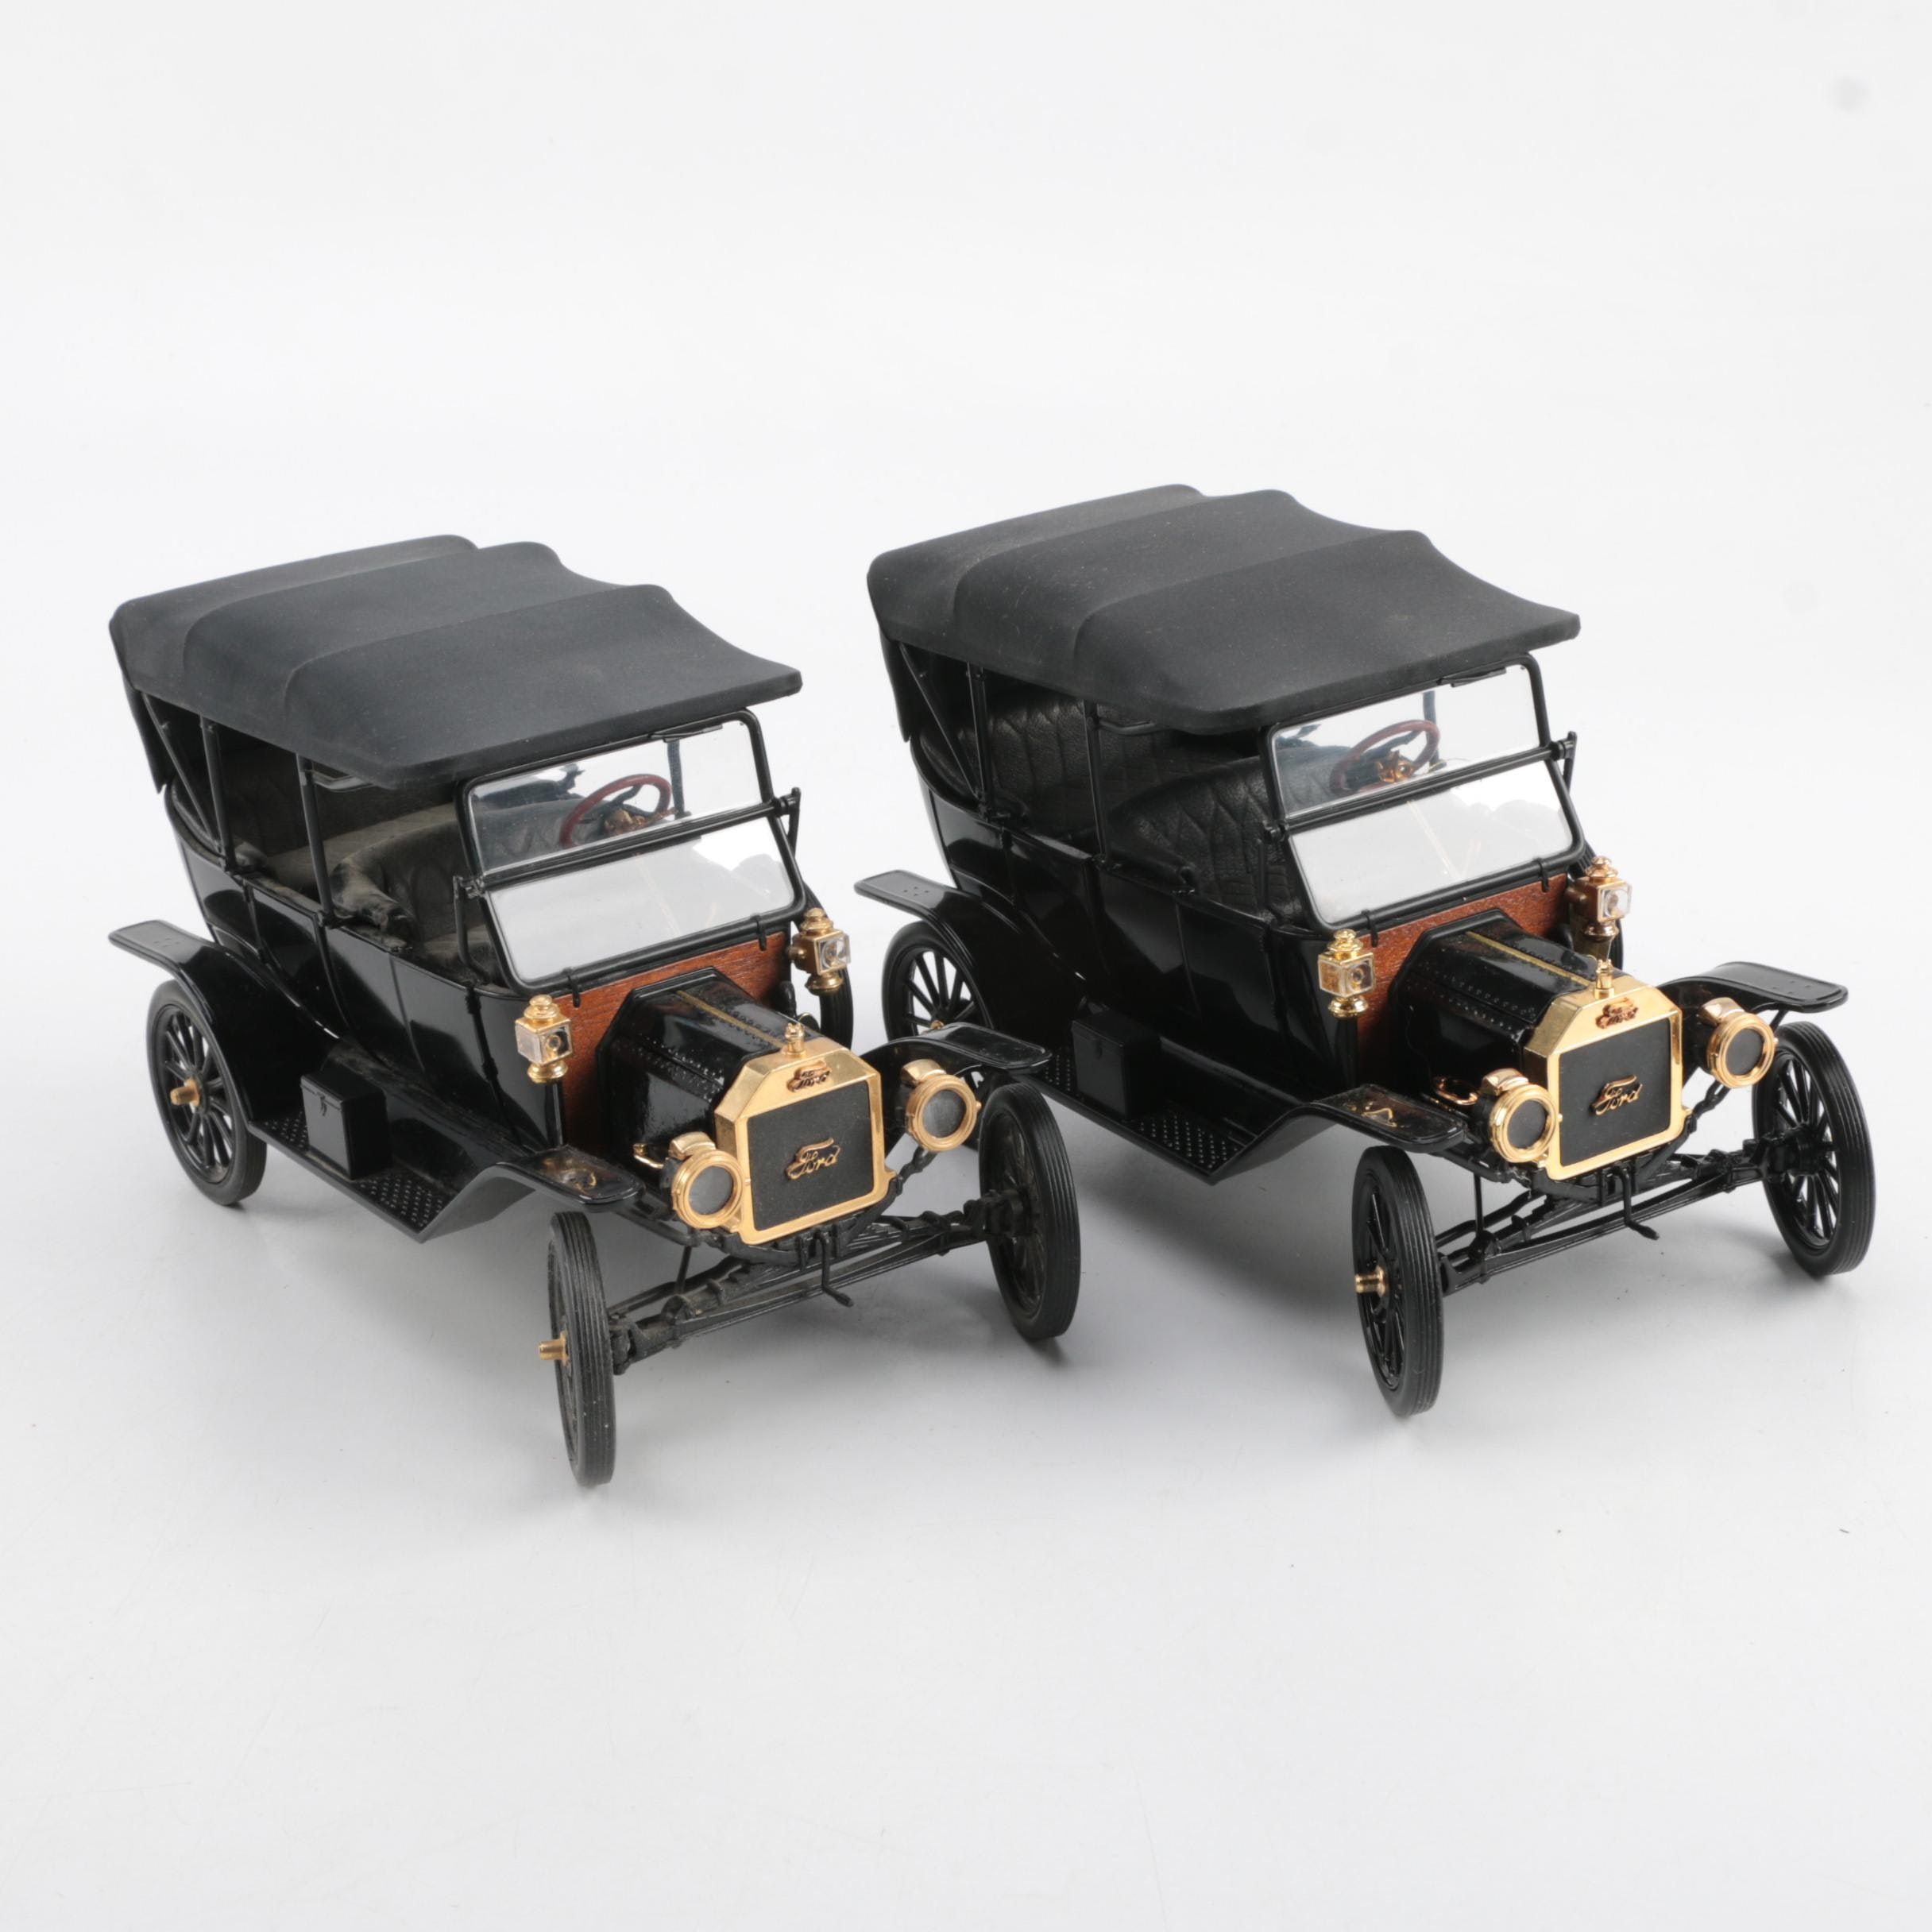 Pair of 1920s Ford Model T Touring Cars